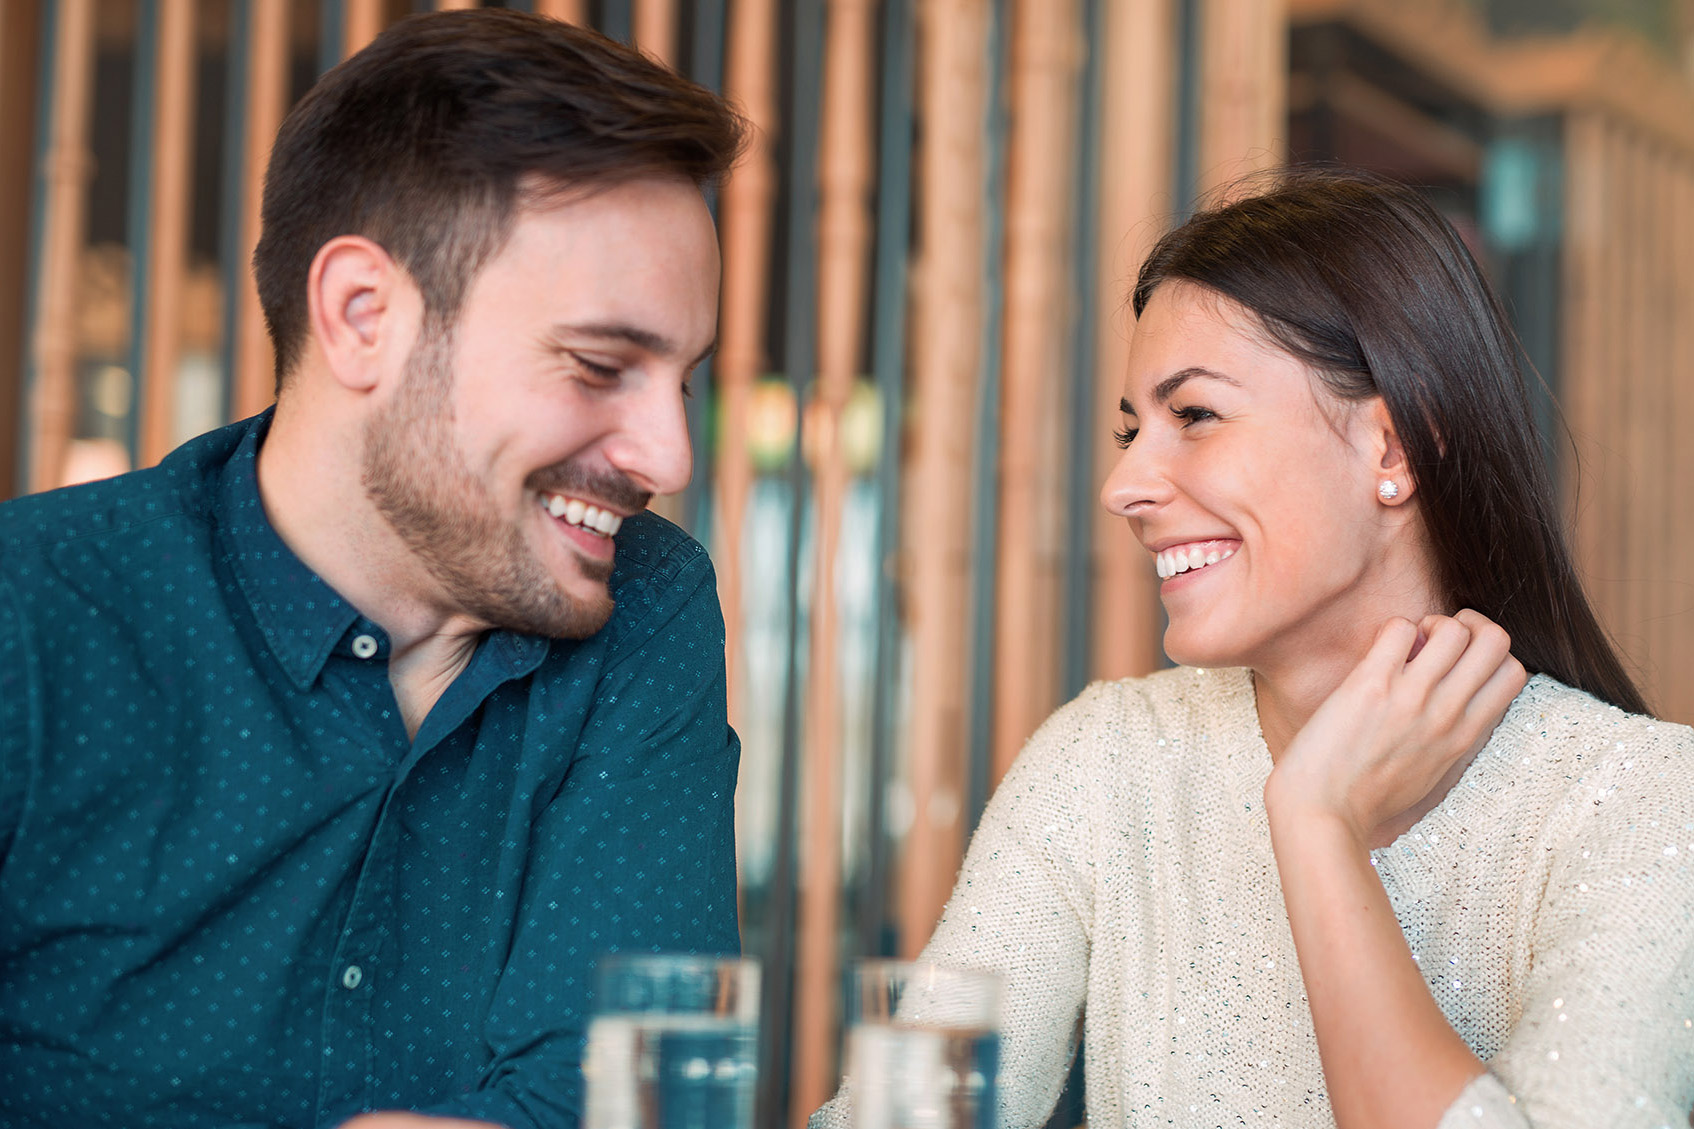 Image result for GIRL TALKING TO GUY